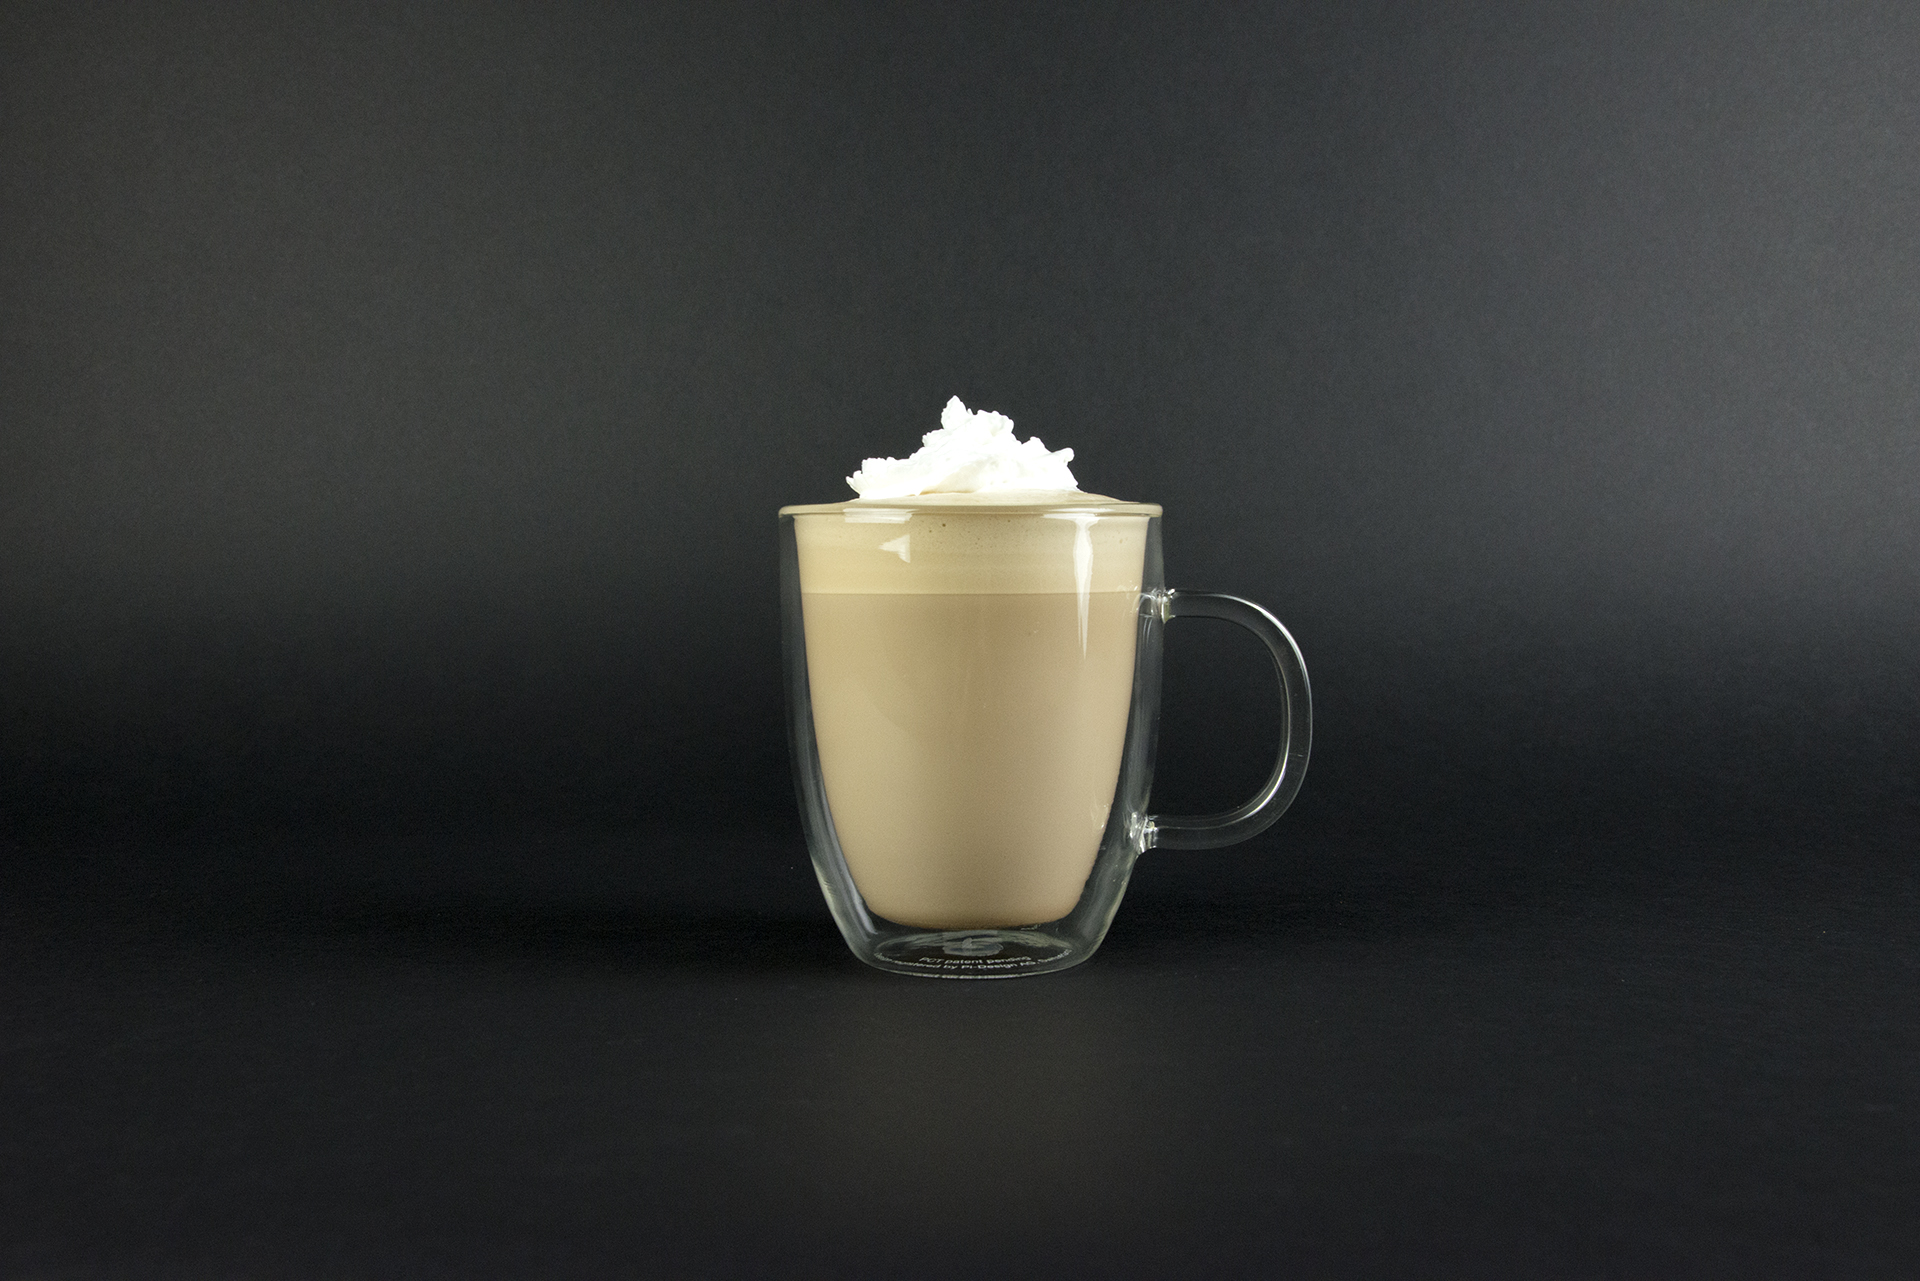 Amie-LeeKing-food-photography-latte.jpg